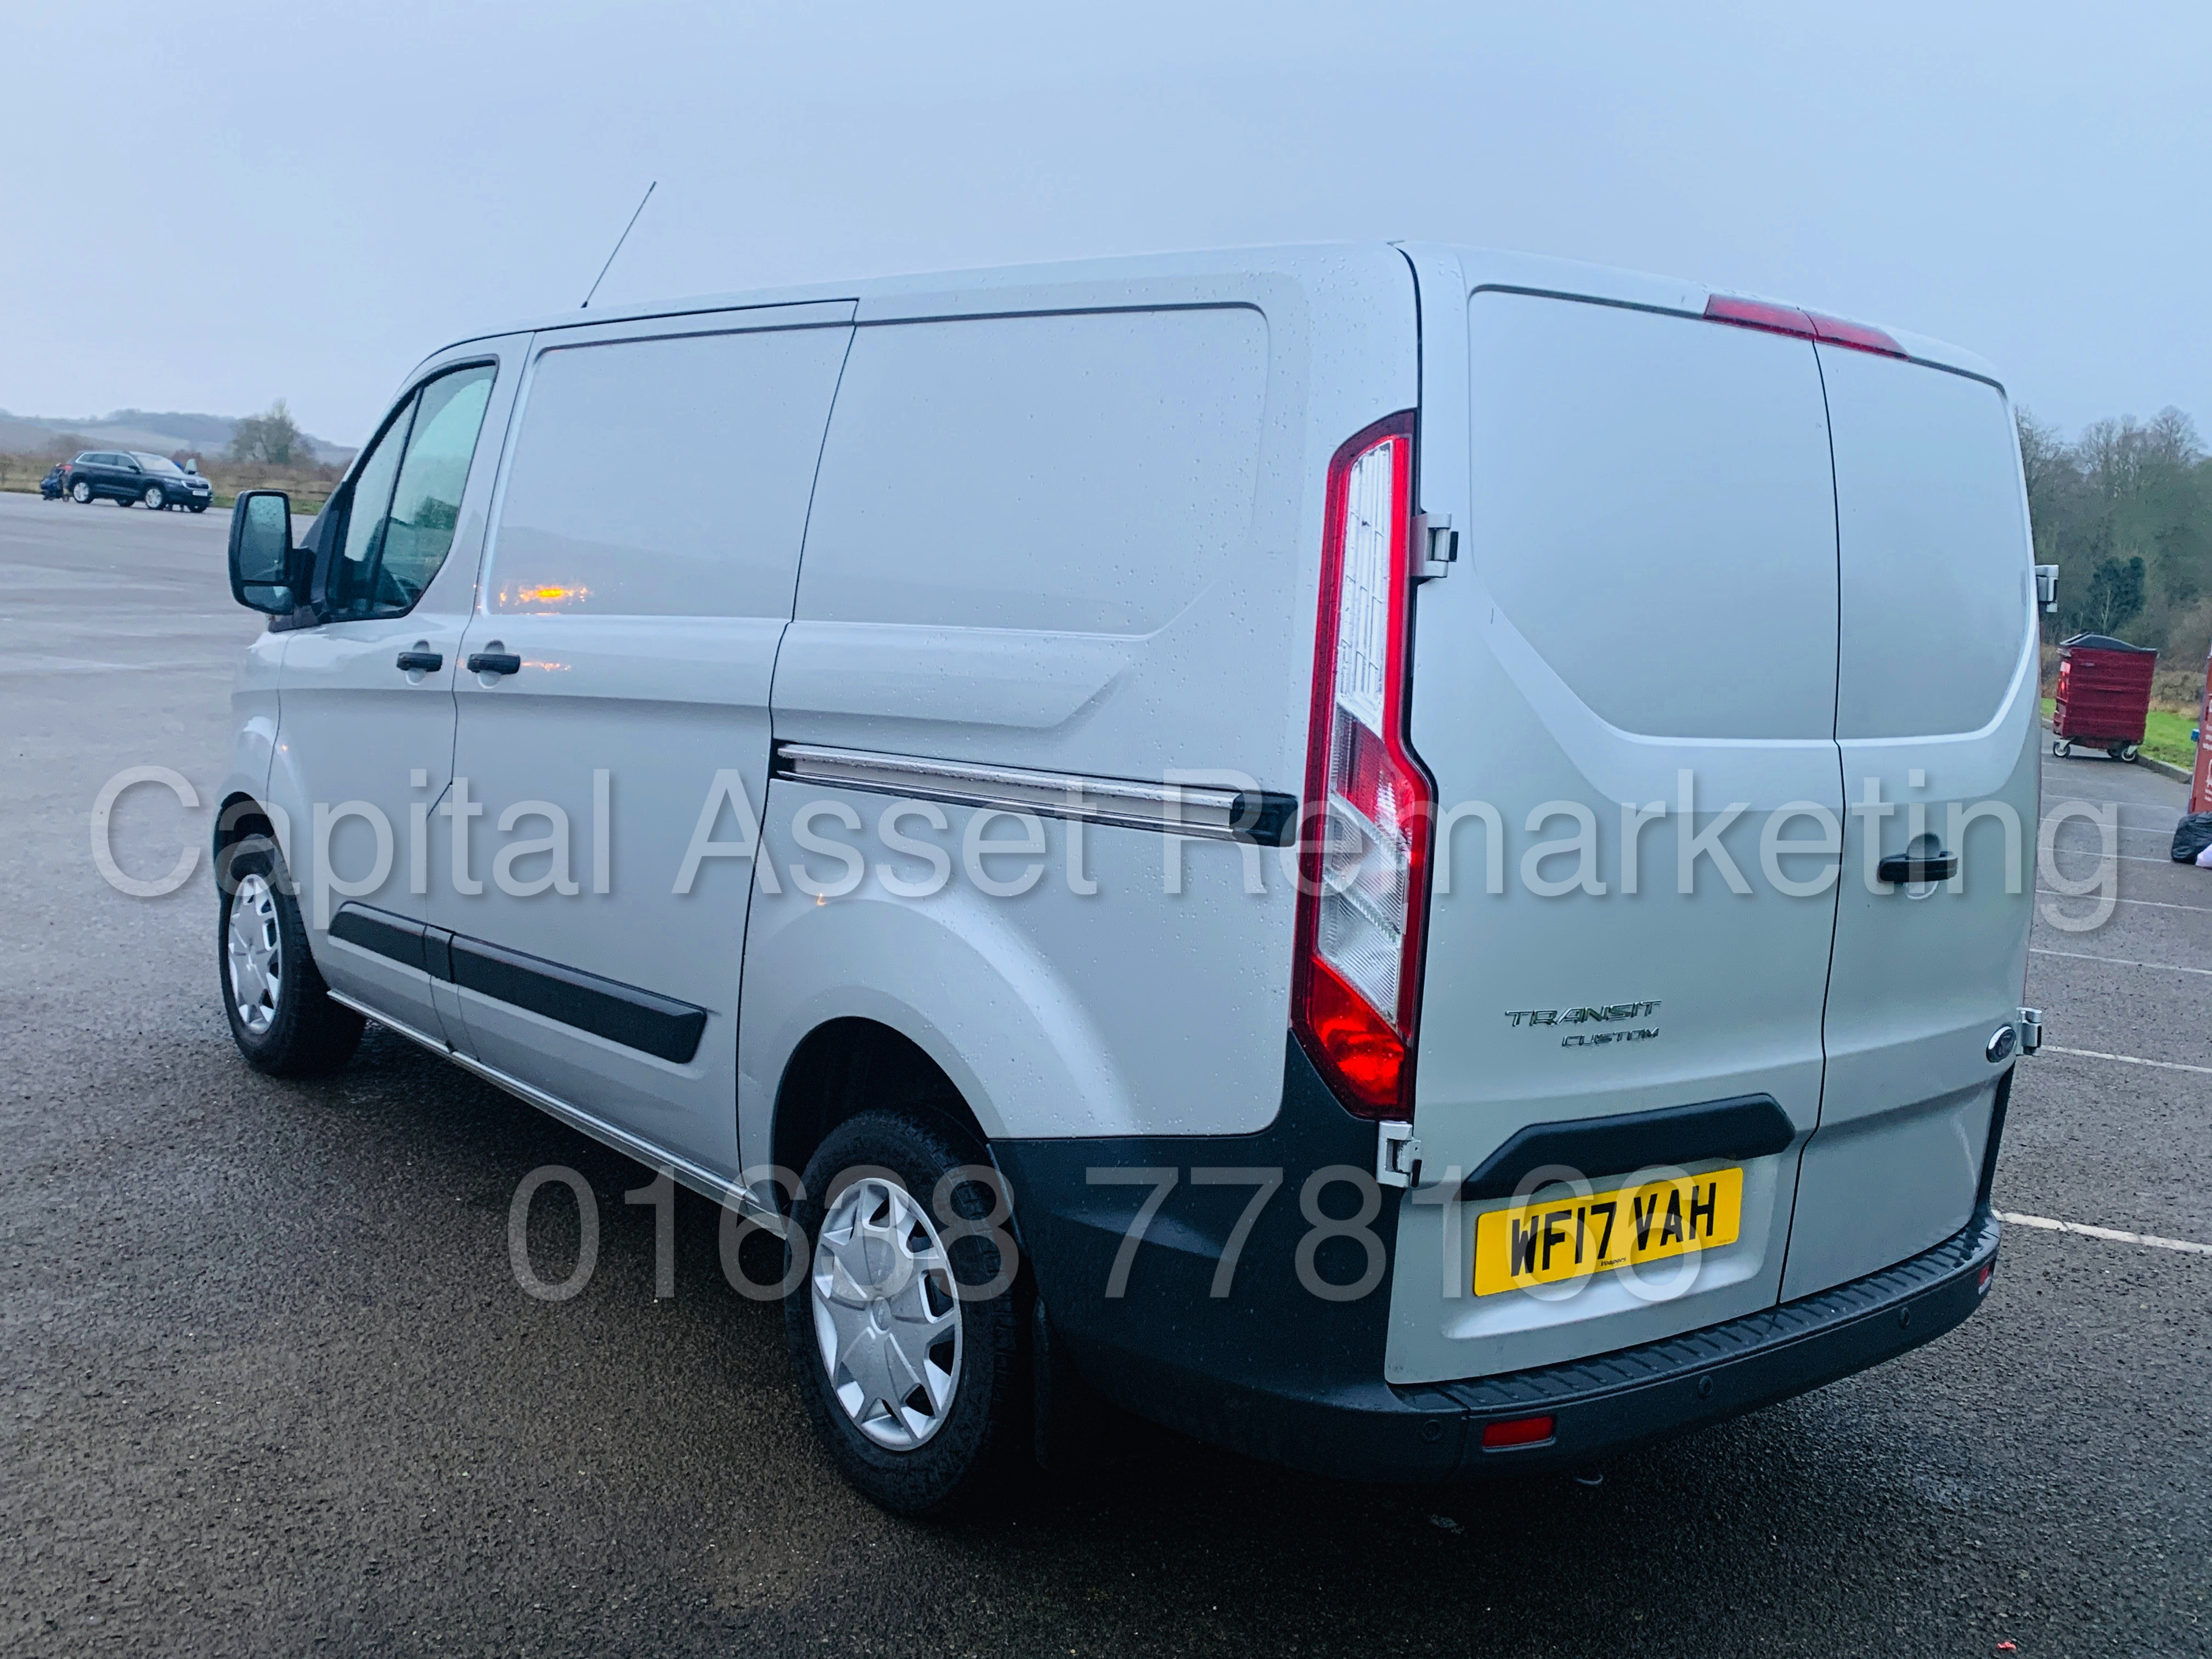 (On Sale) FORD TRANSIT *TREND* 290 SWB (2017 - EURO 6 / AD-BLUE) '2.0 TDCI - 130 BHP - 6 SPEED' - Image 9 of 41